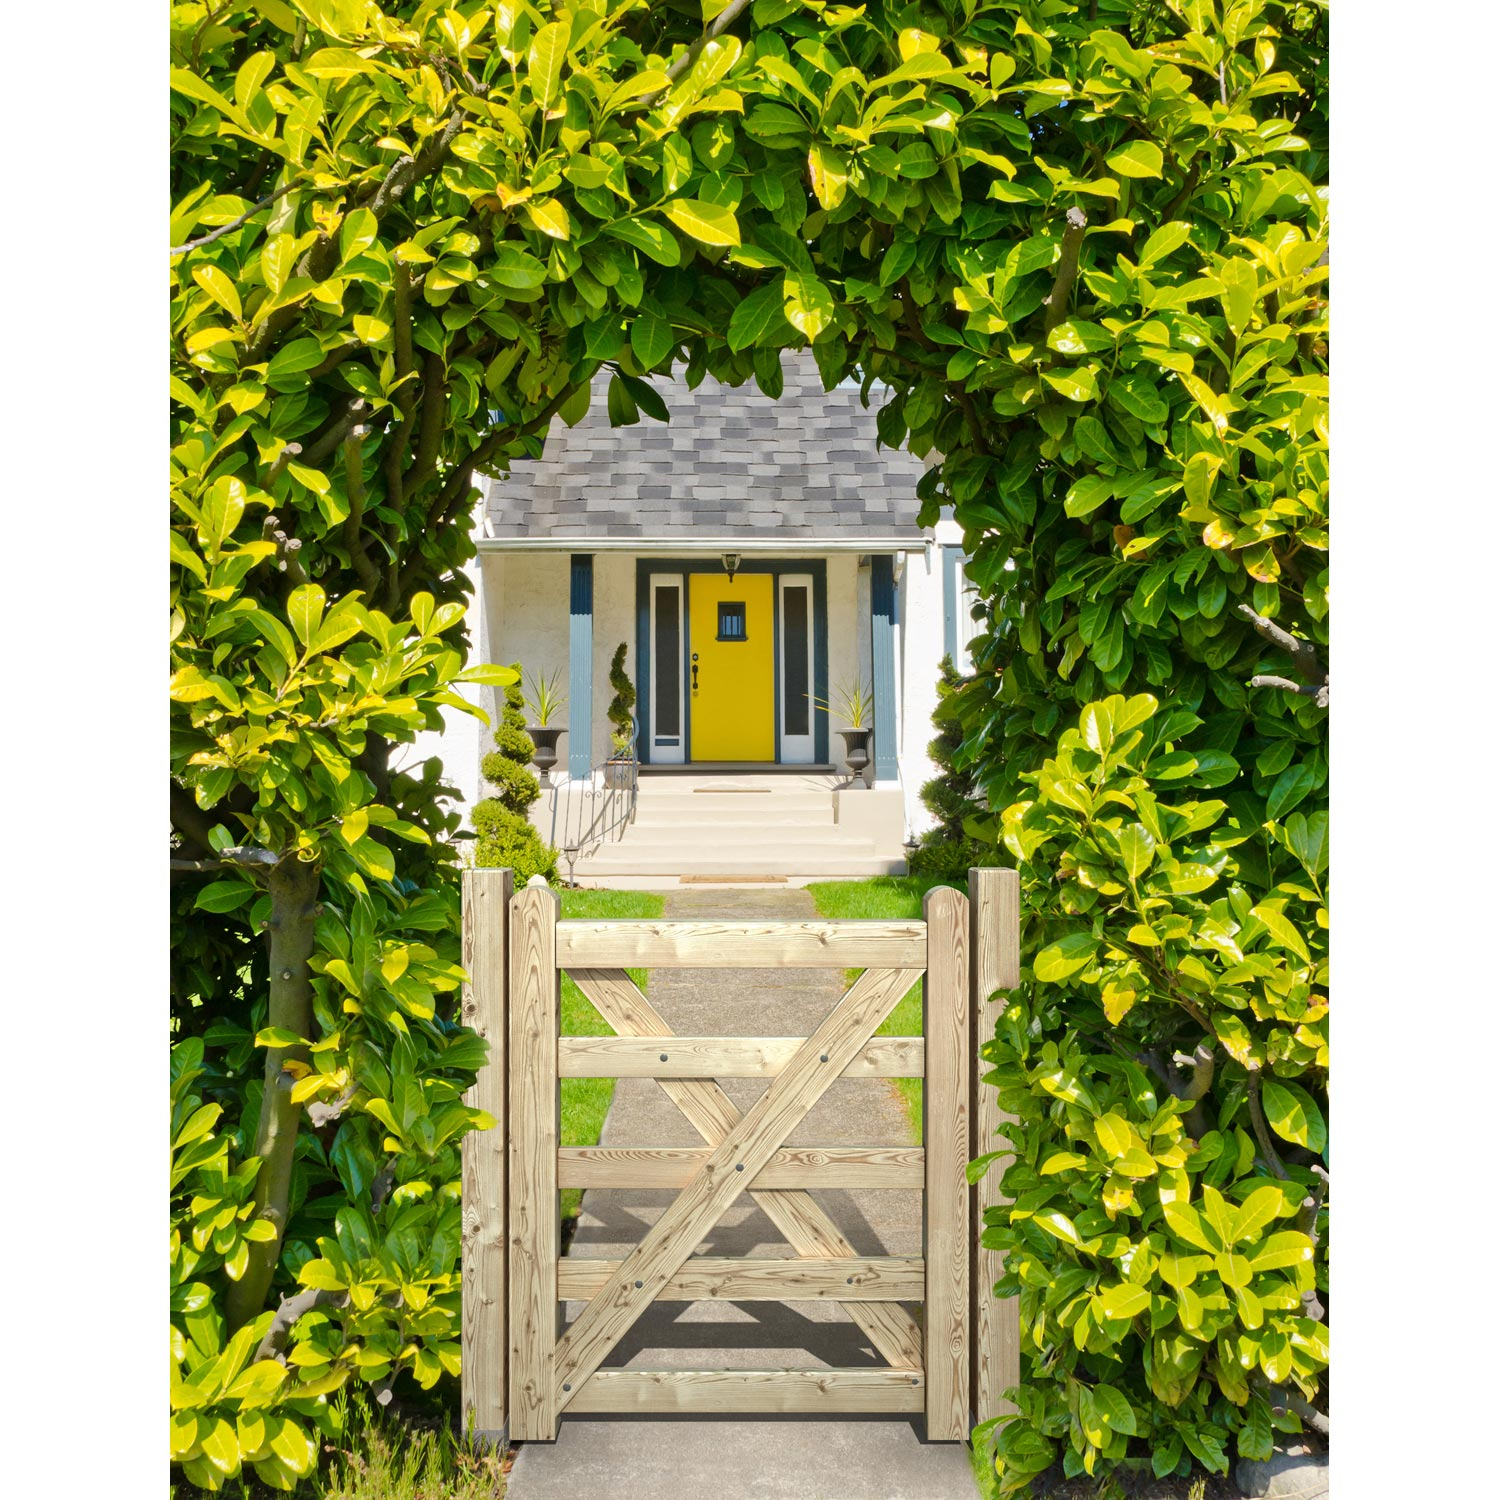 Portillon bois anglaise naturel x cm leroy merlin - Leroy merlin portillon jardin ...